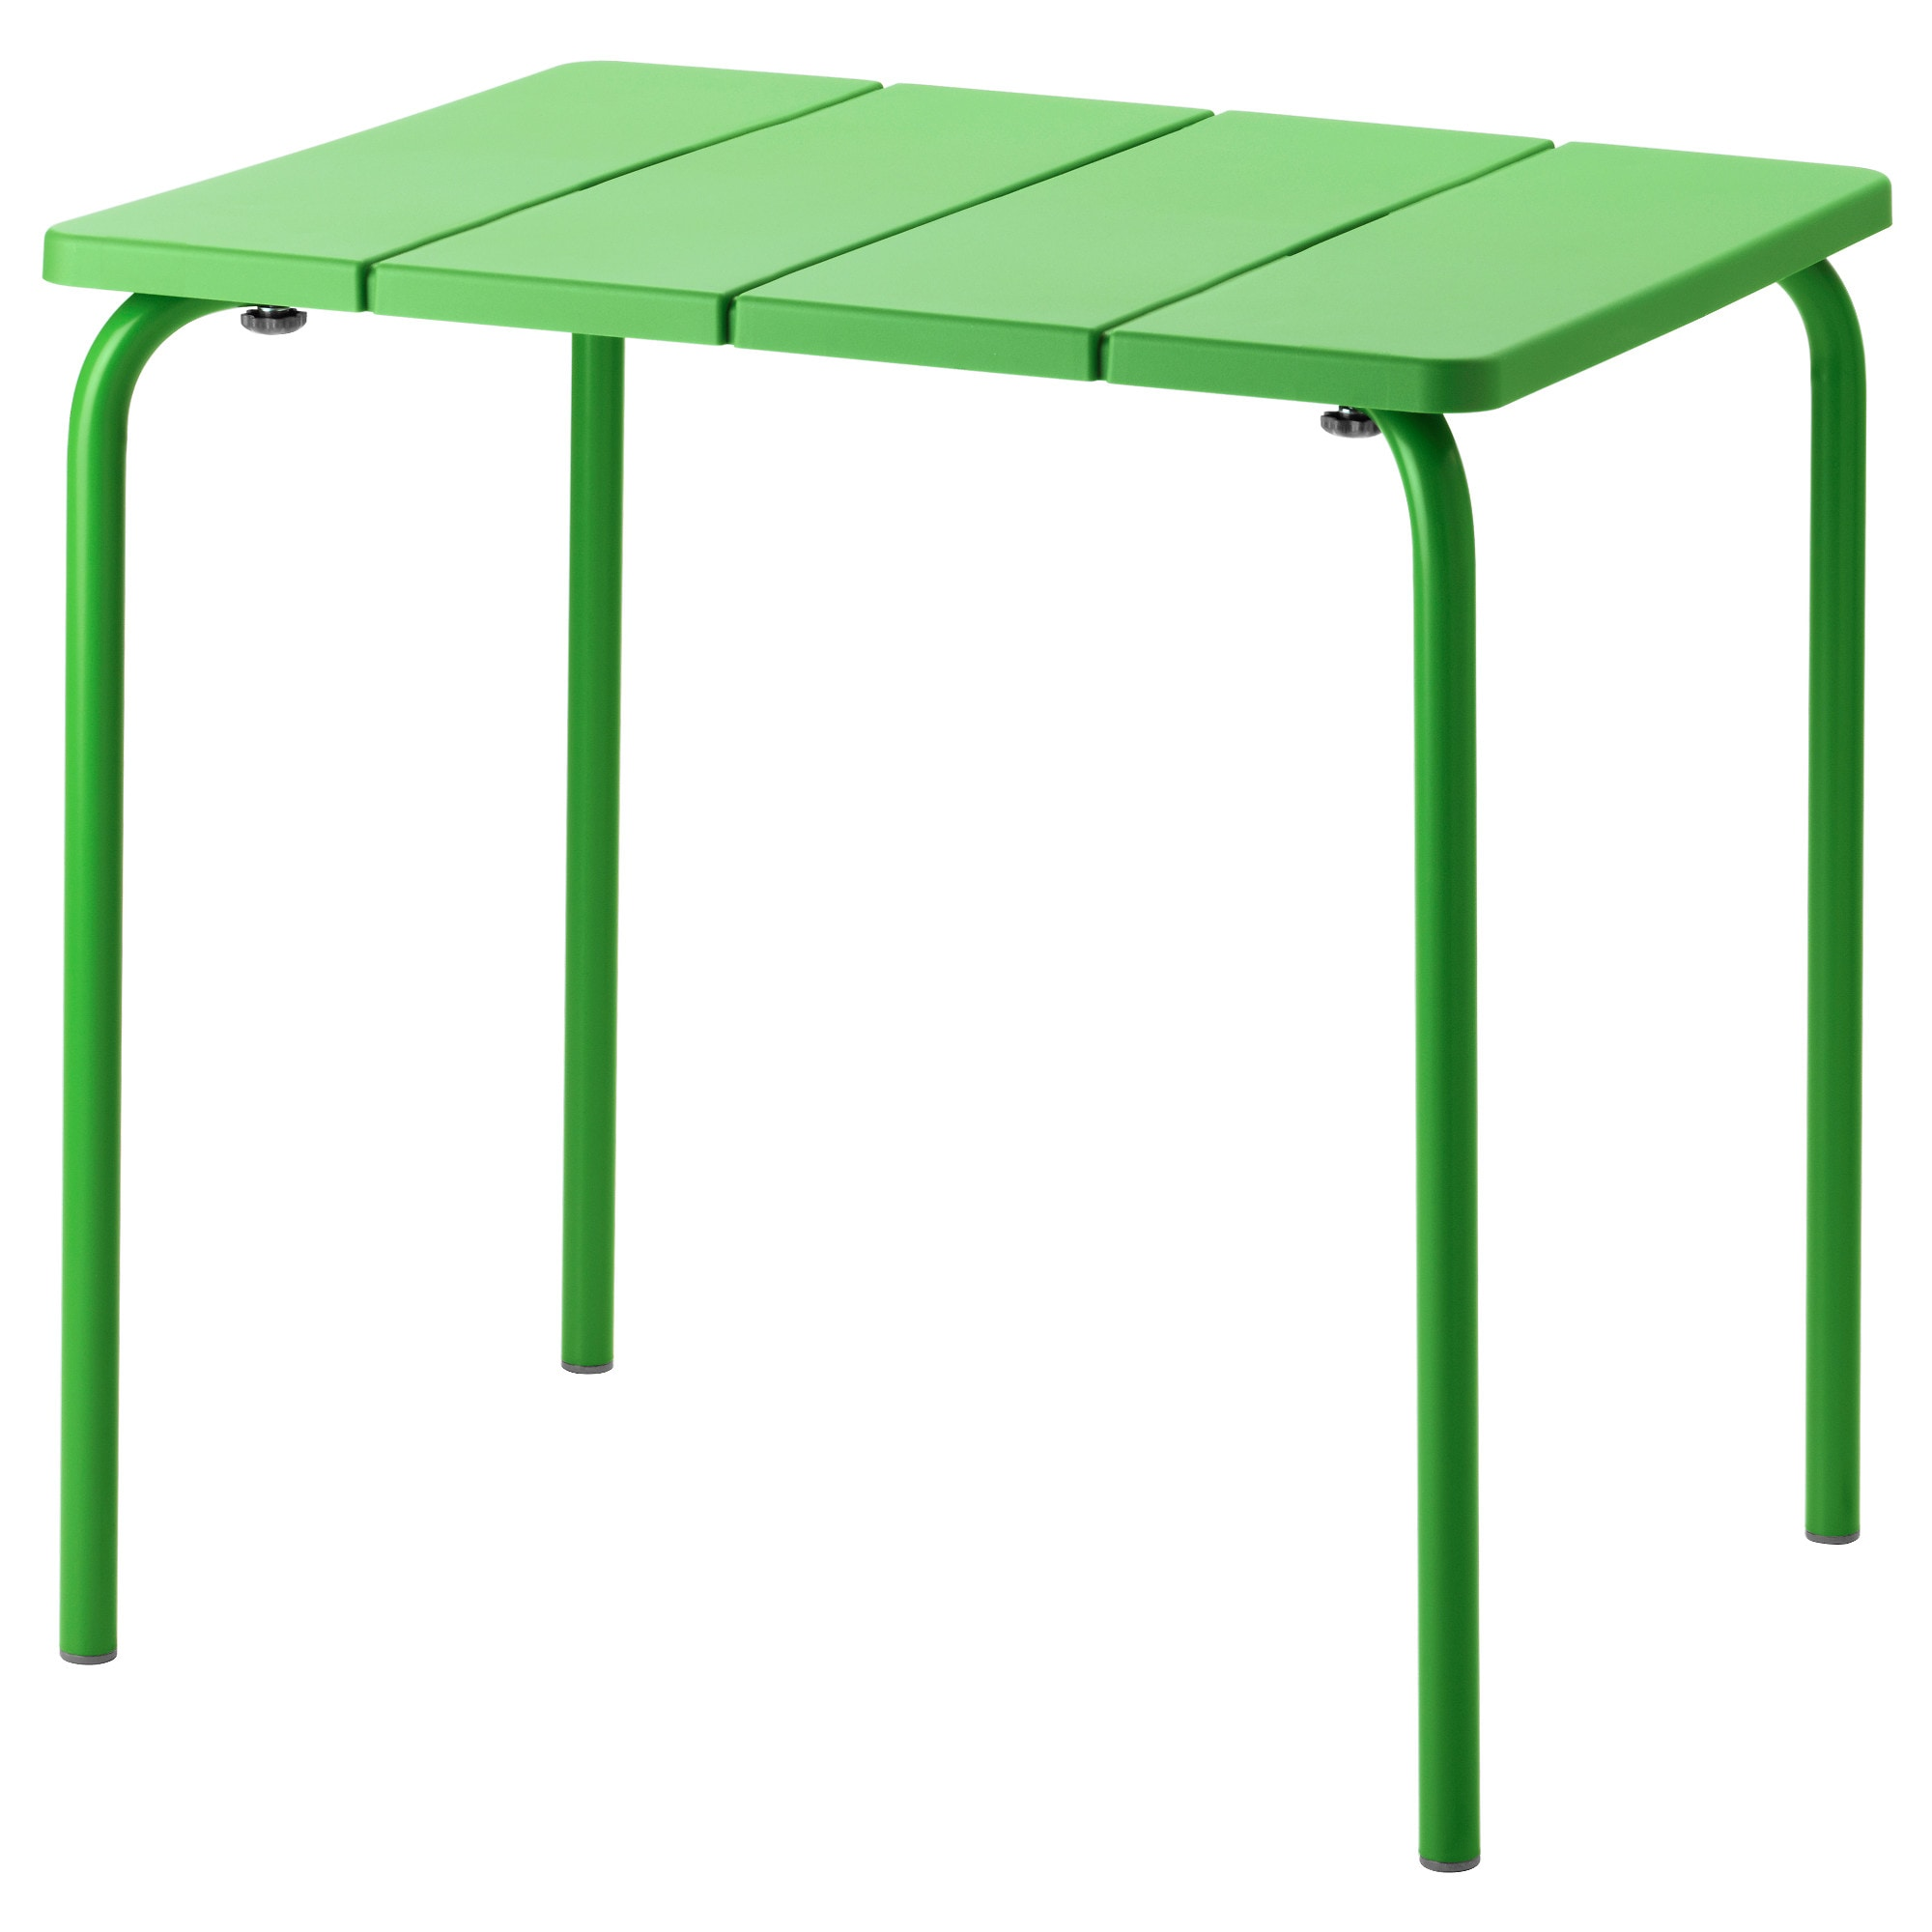 Green table CARSPART : 0400141PE565952S5 from carspart.net size 2000 x 2000 jpeg 211kB